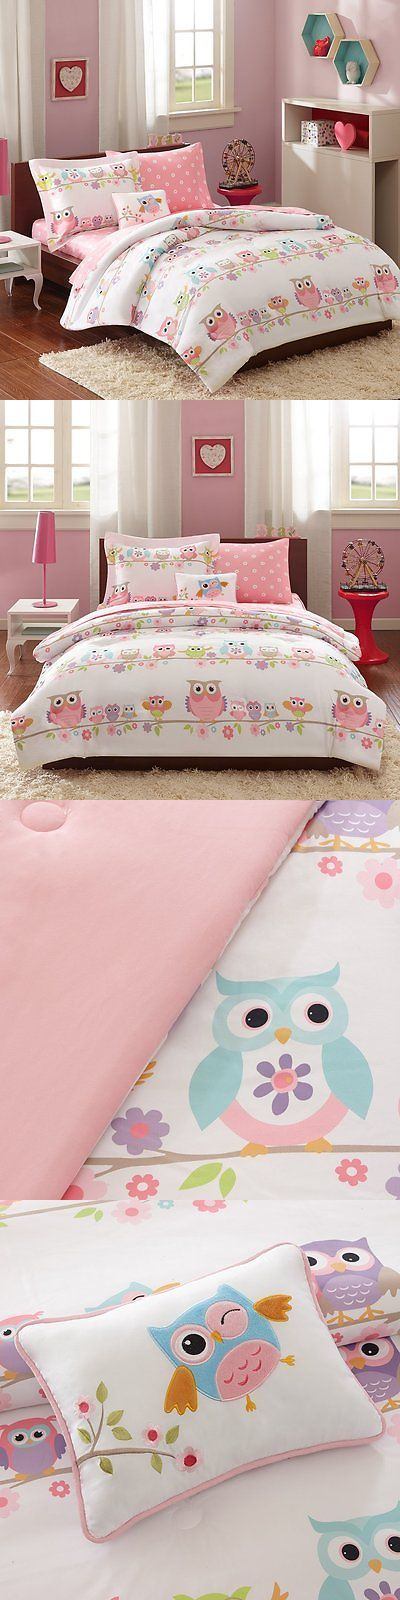 Comforters and Sets 66728: Owl Bedding Set Girls Pink Twin Bed Sheet Comforter 6 Piece Bag Fitted Flat New -> BUY IT NOW ONLY: $90.88 on eBay!